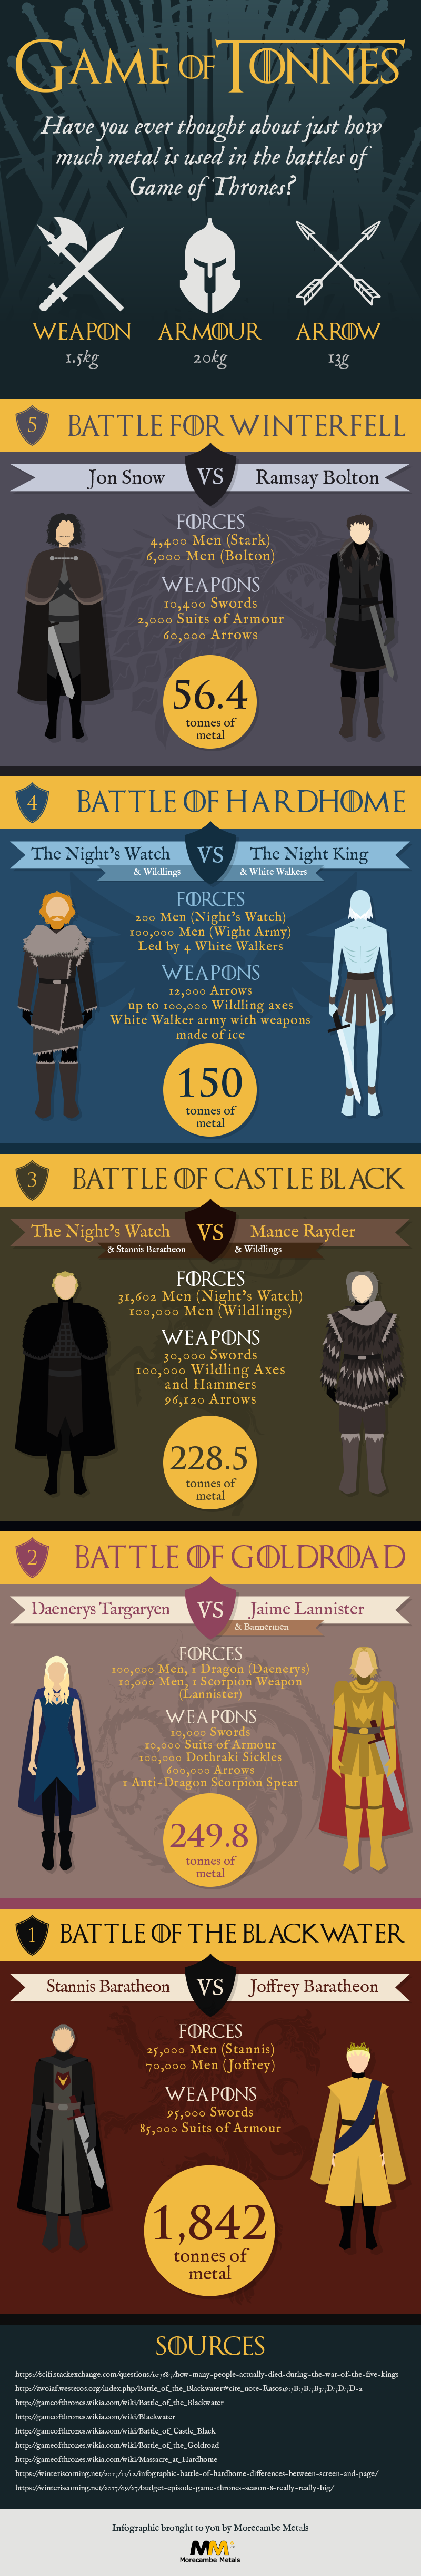 Morecambe Metals Infographic - Game of Tonnes